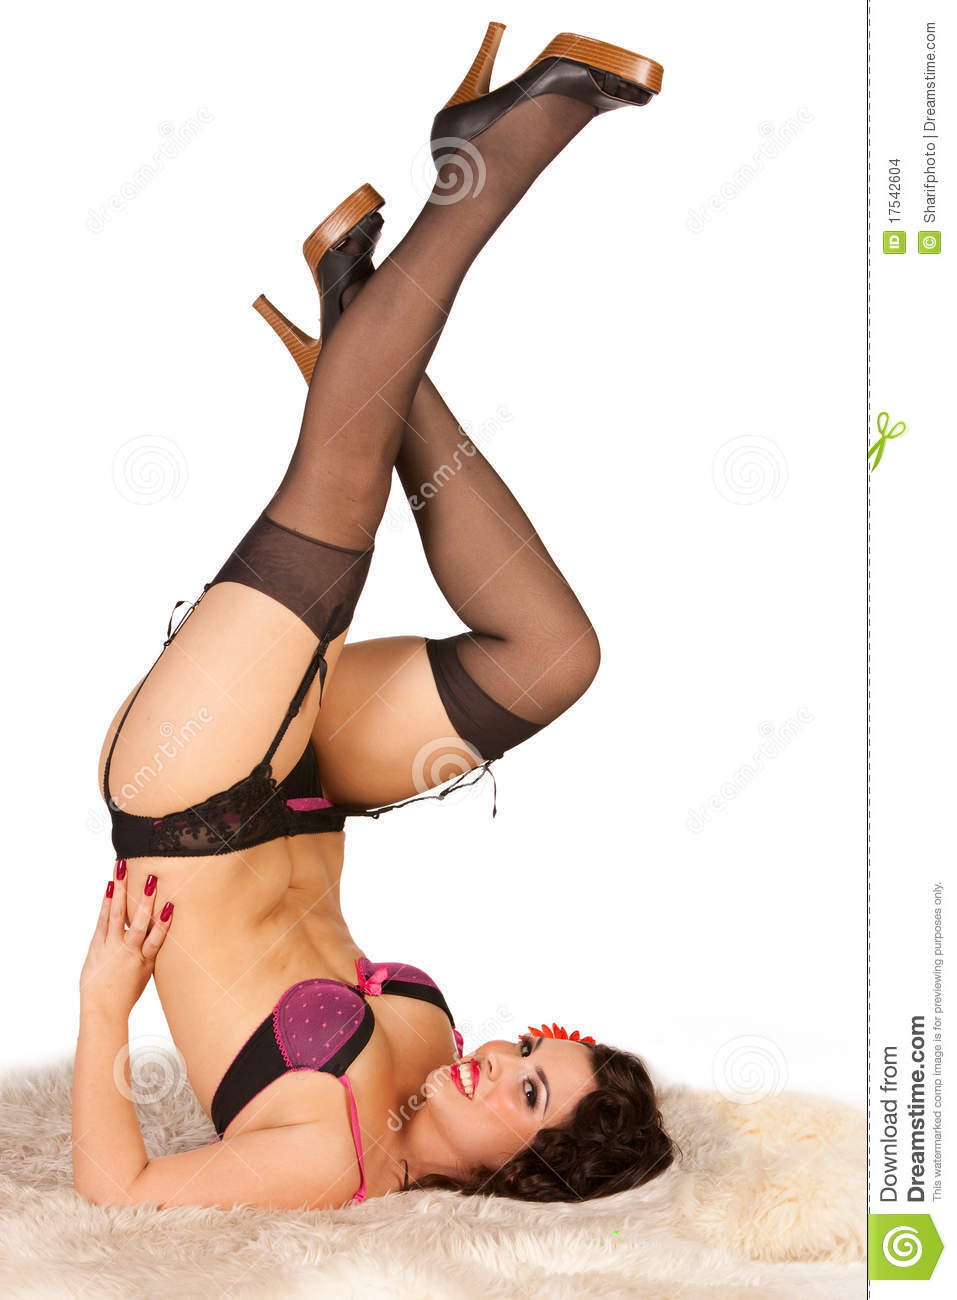 Old Fashioned Nylons